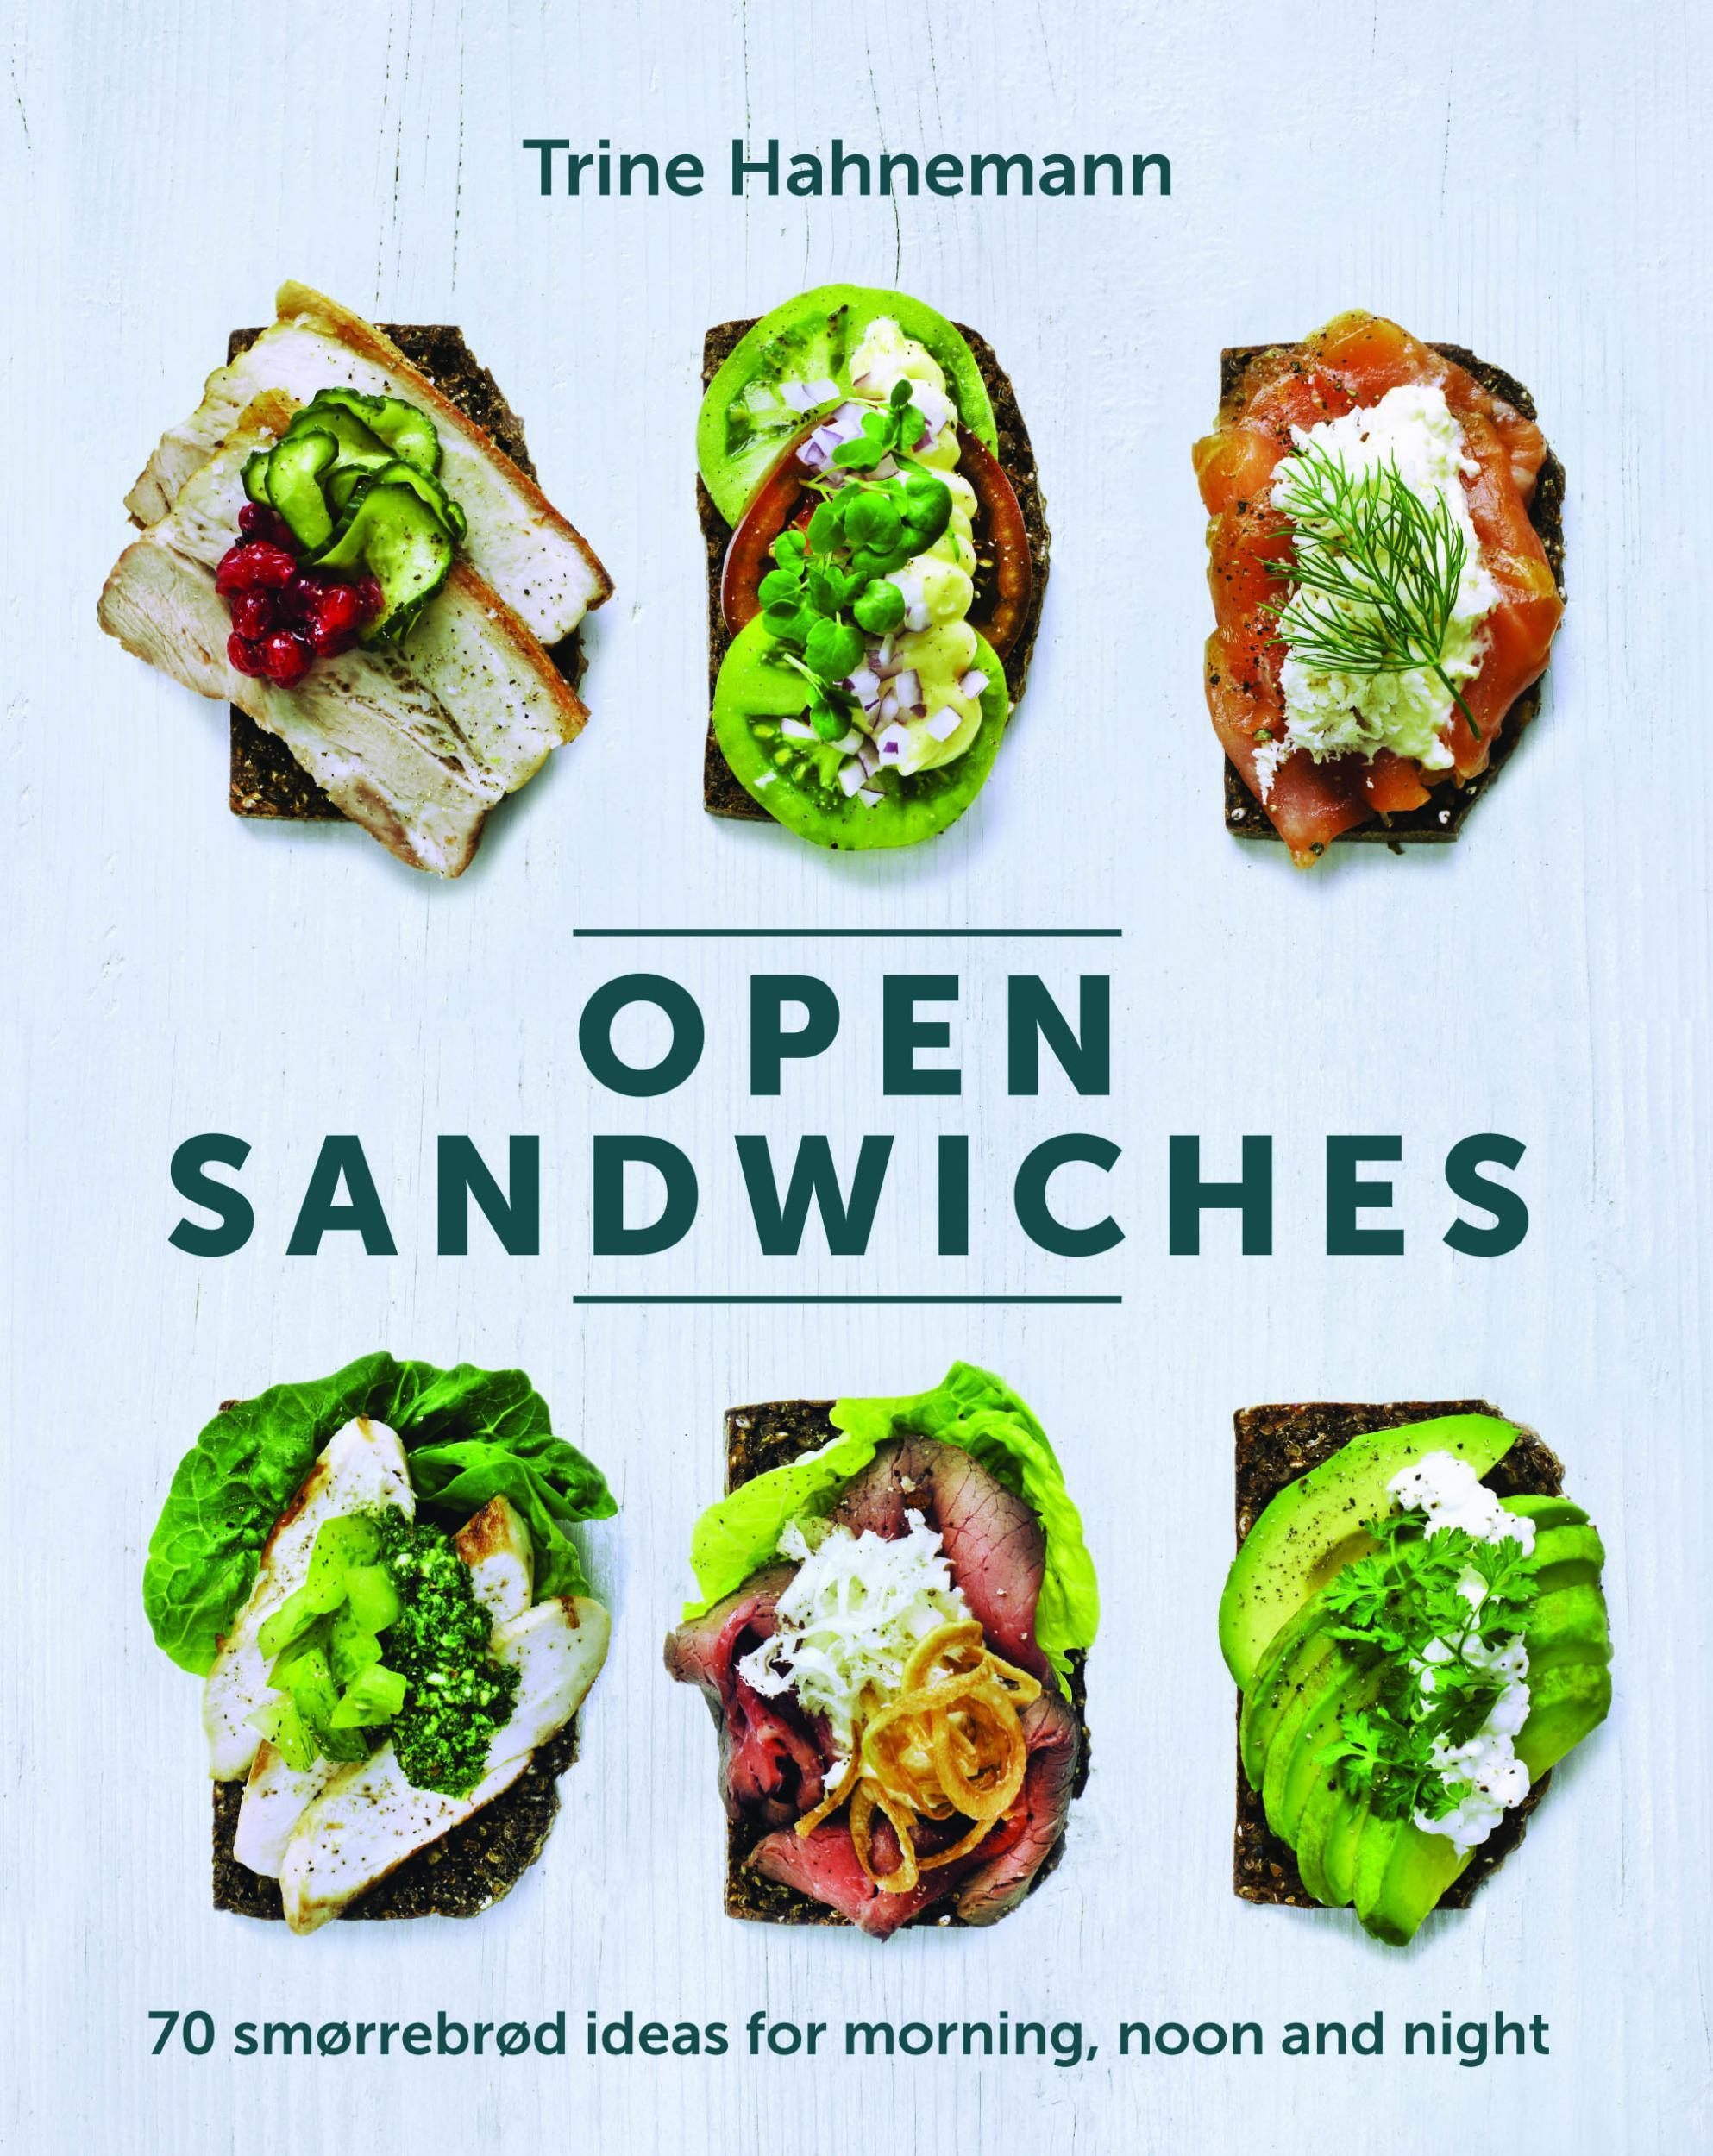 Open Sandwiches: From peaches and blue cheese to cod and